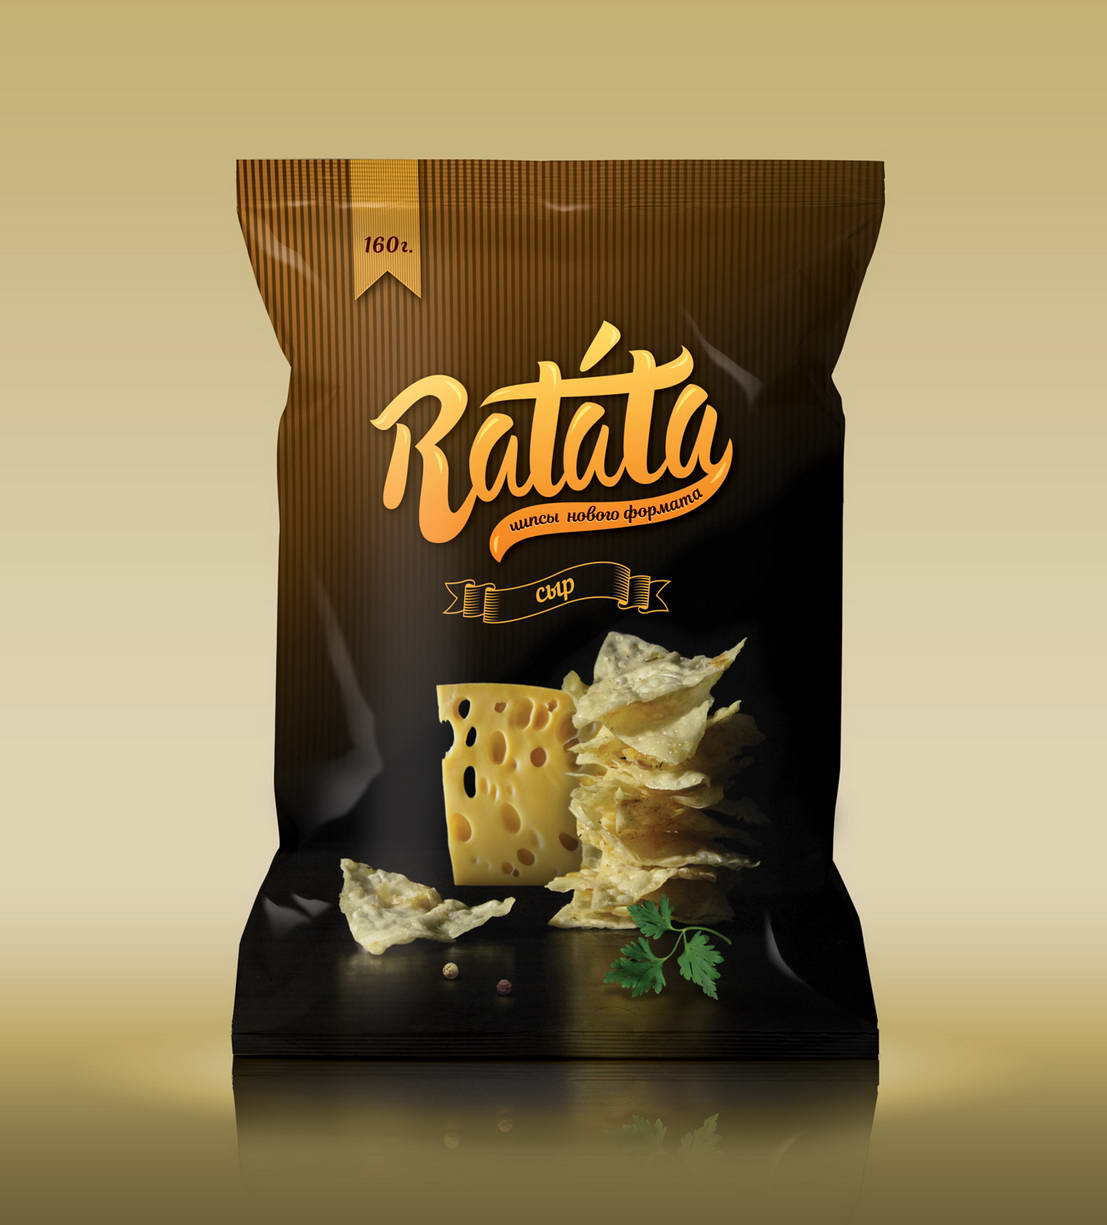 emballage design chips med ost Ratata